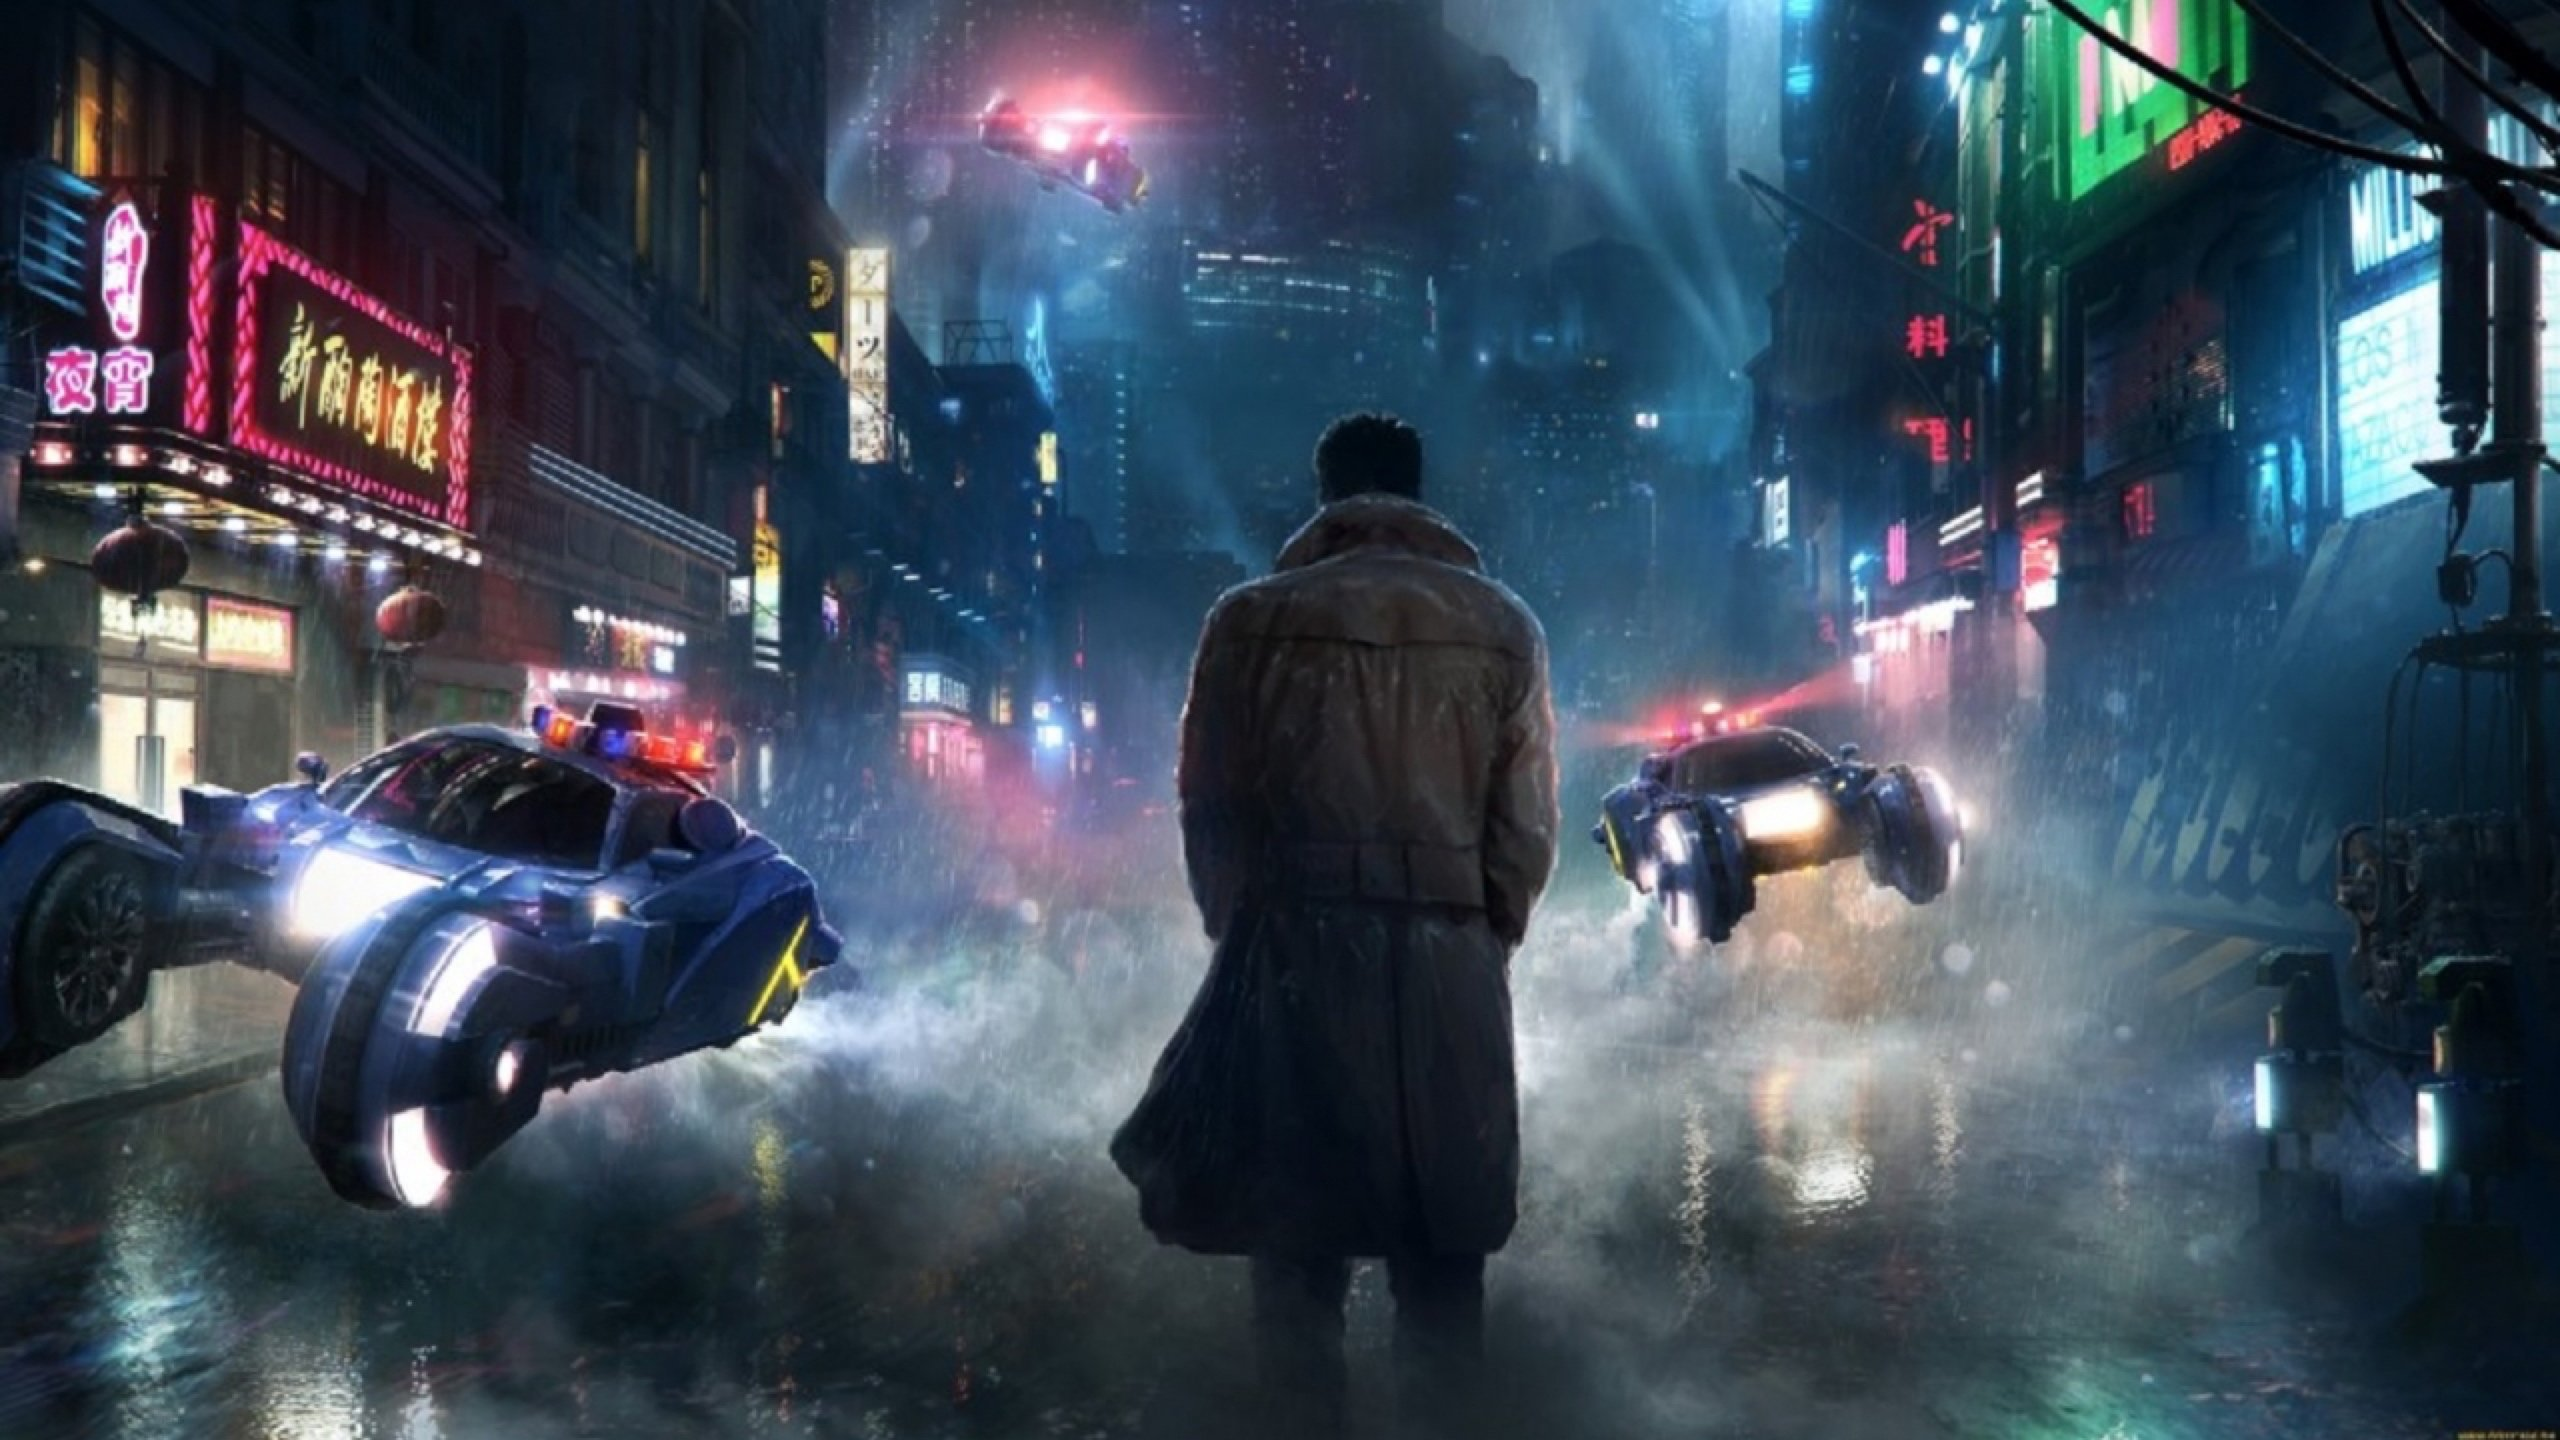 Blade Runner 2049 early reactions call sequel 'stunning', 'Oscar-worthy'